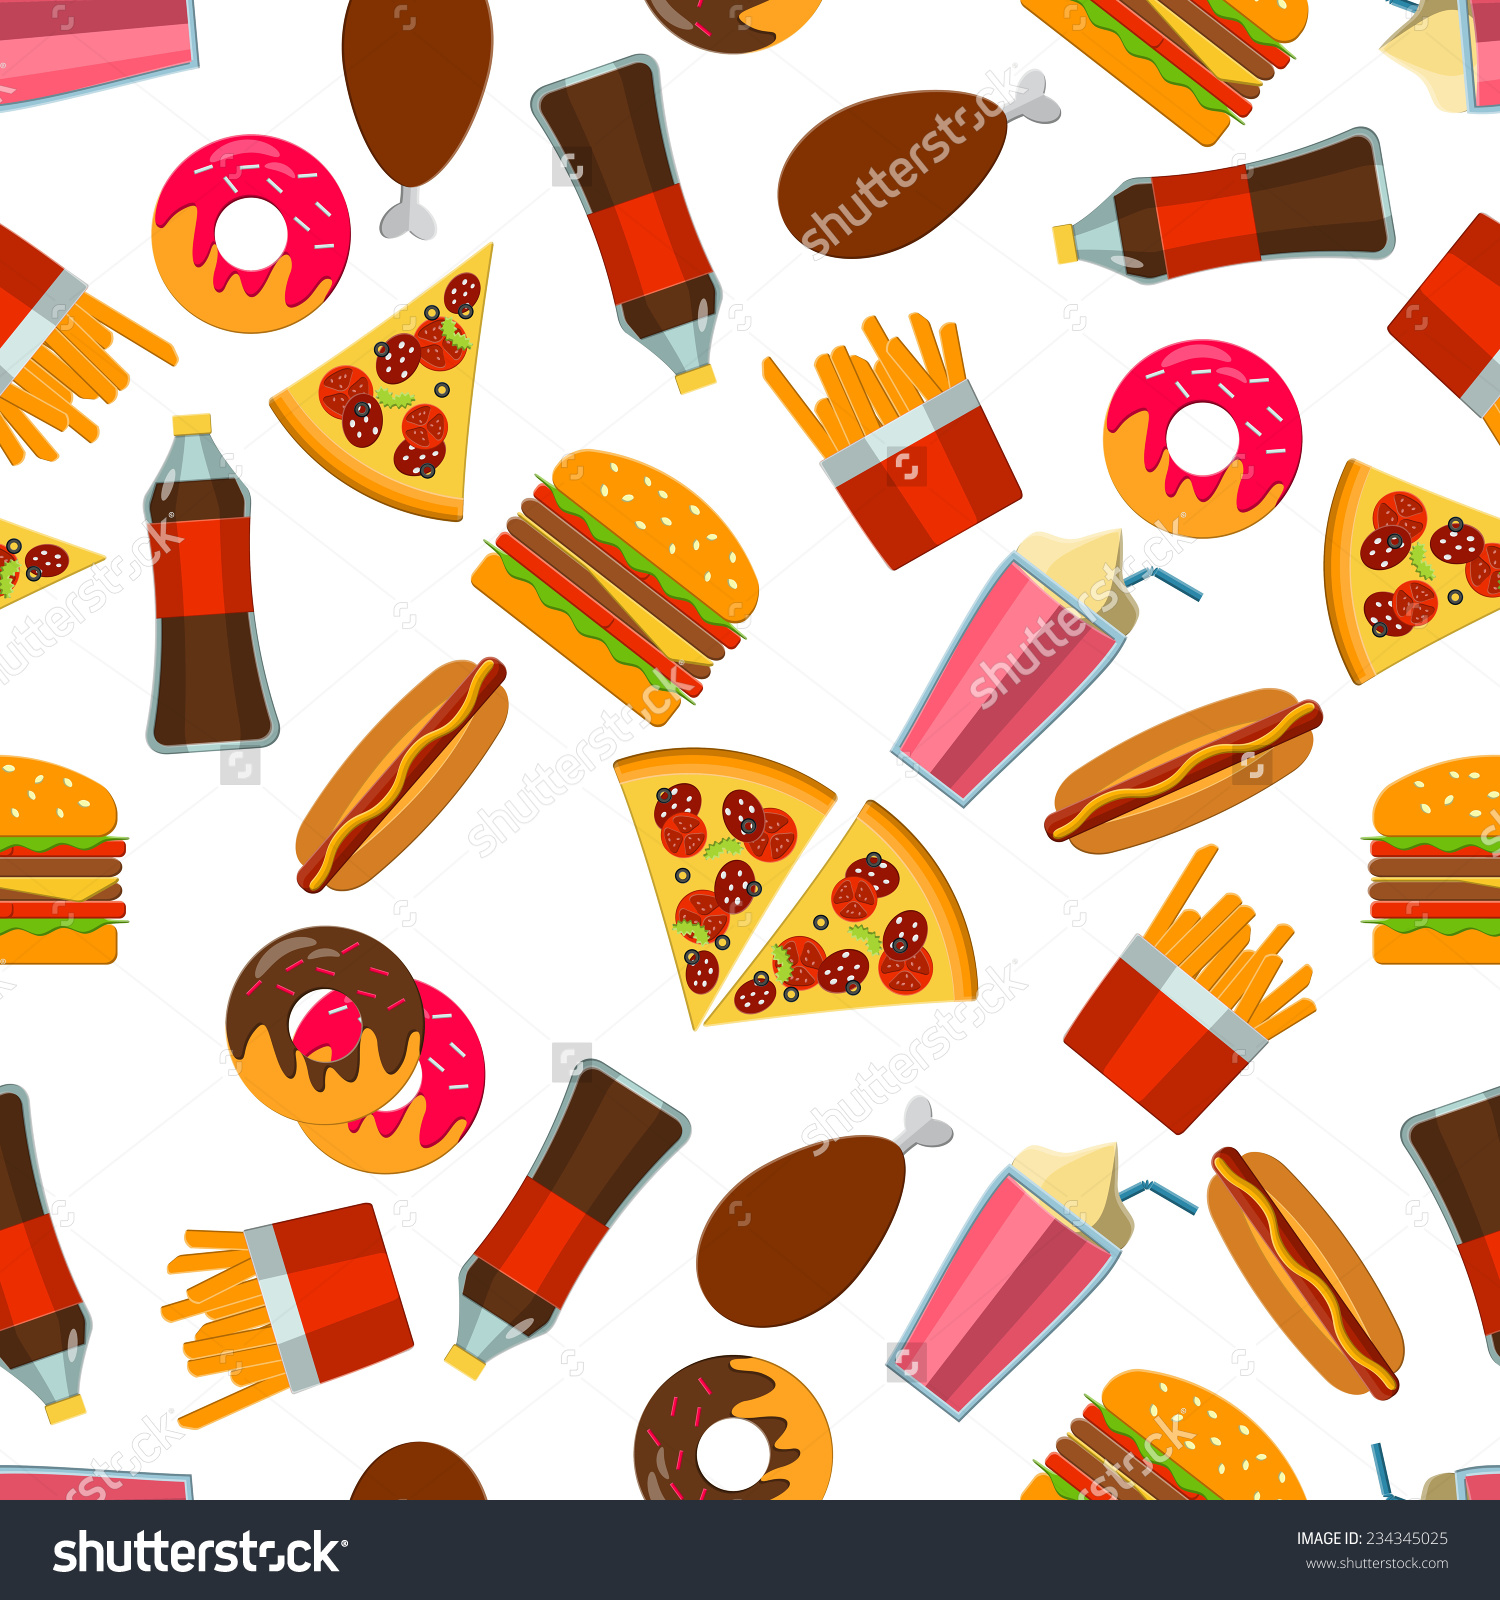 Food Clipart Background.